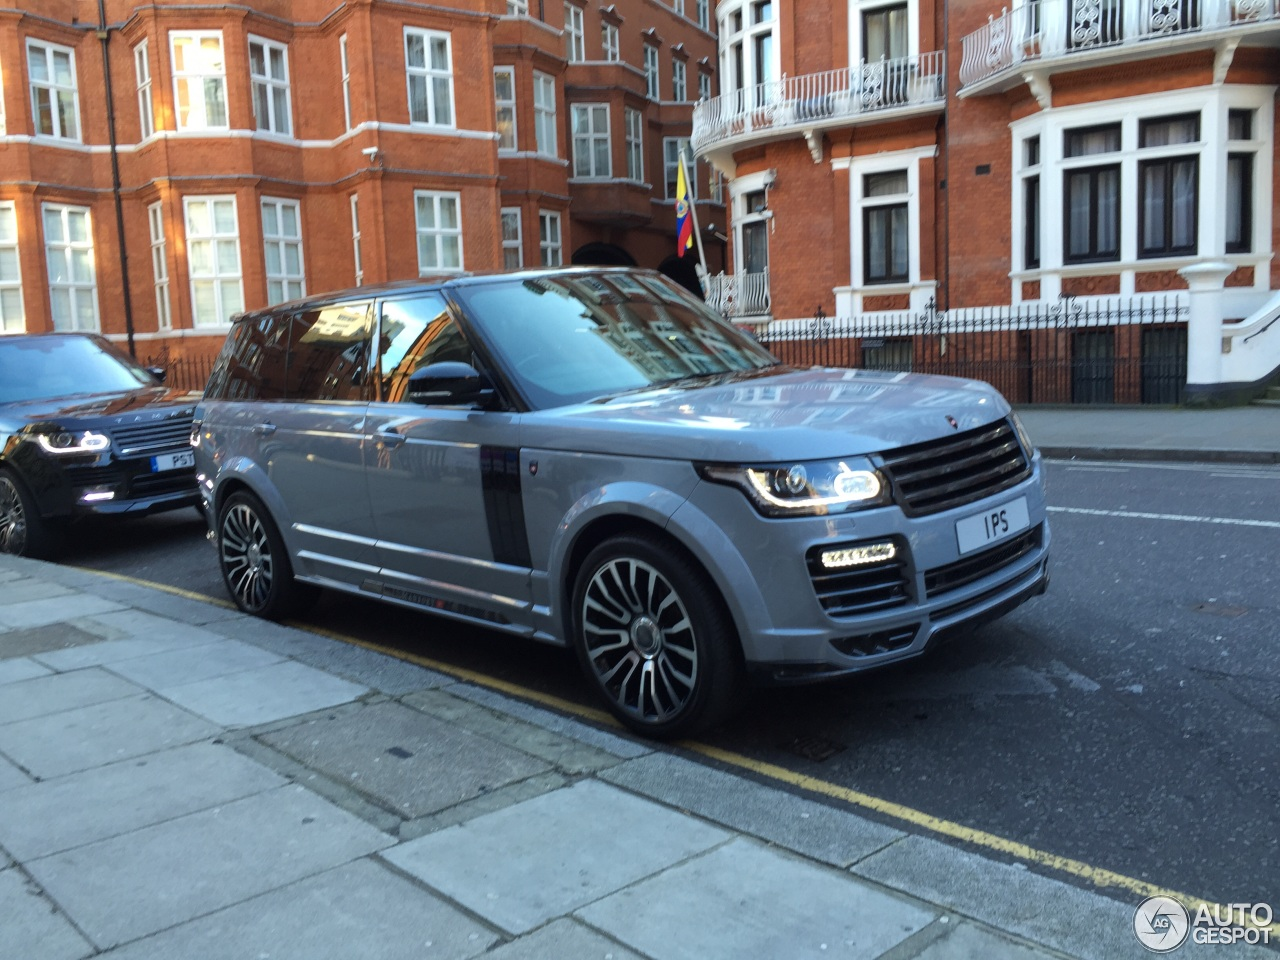 Range Rover Autobiography 2010 >> Land Rover Mansory Range Rover Autobiography LWB 2013 - 18 ...